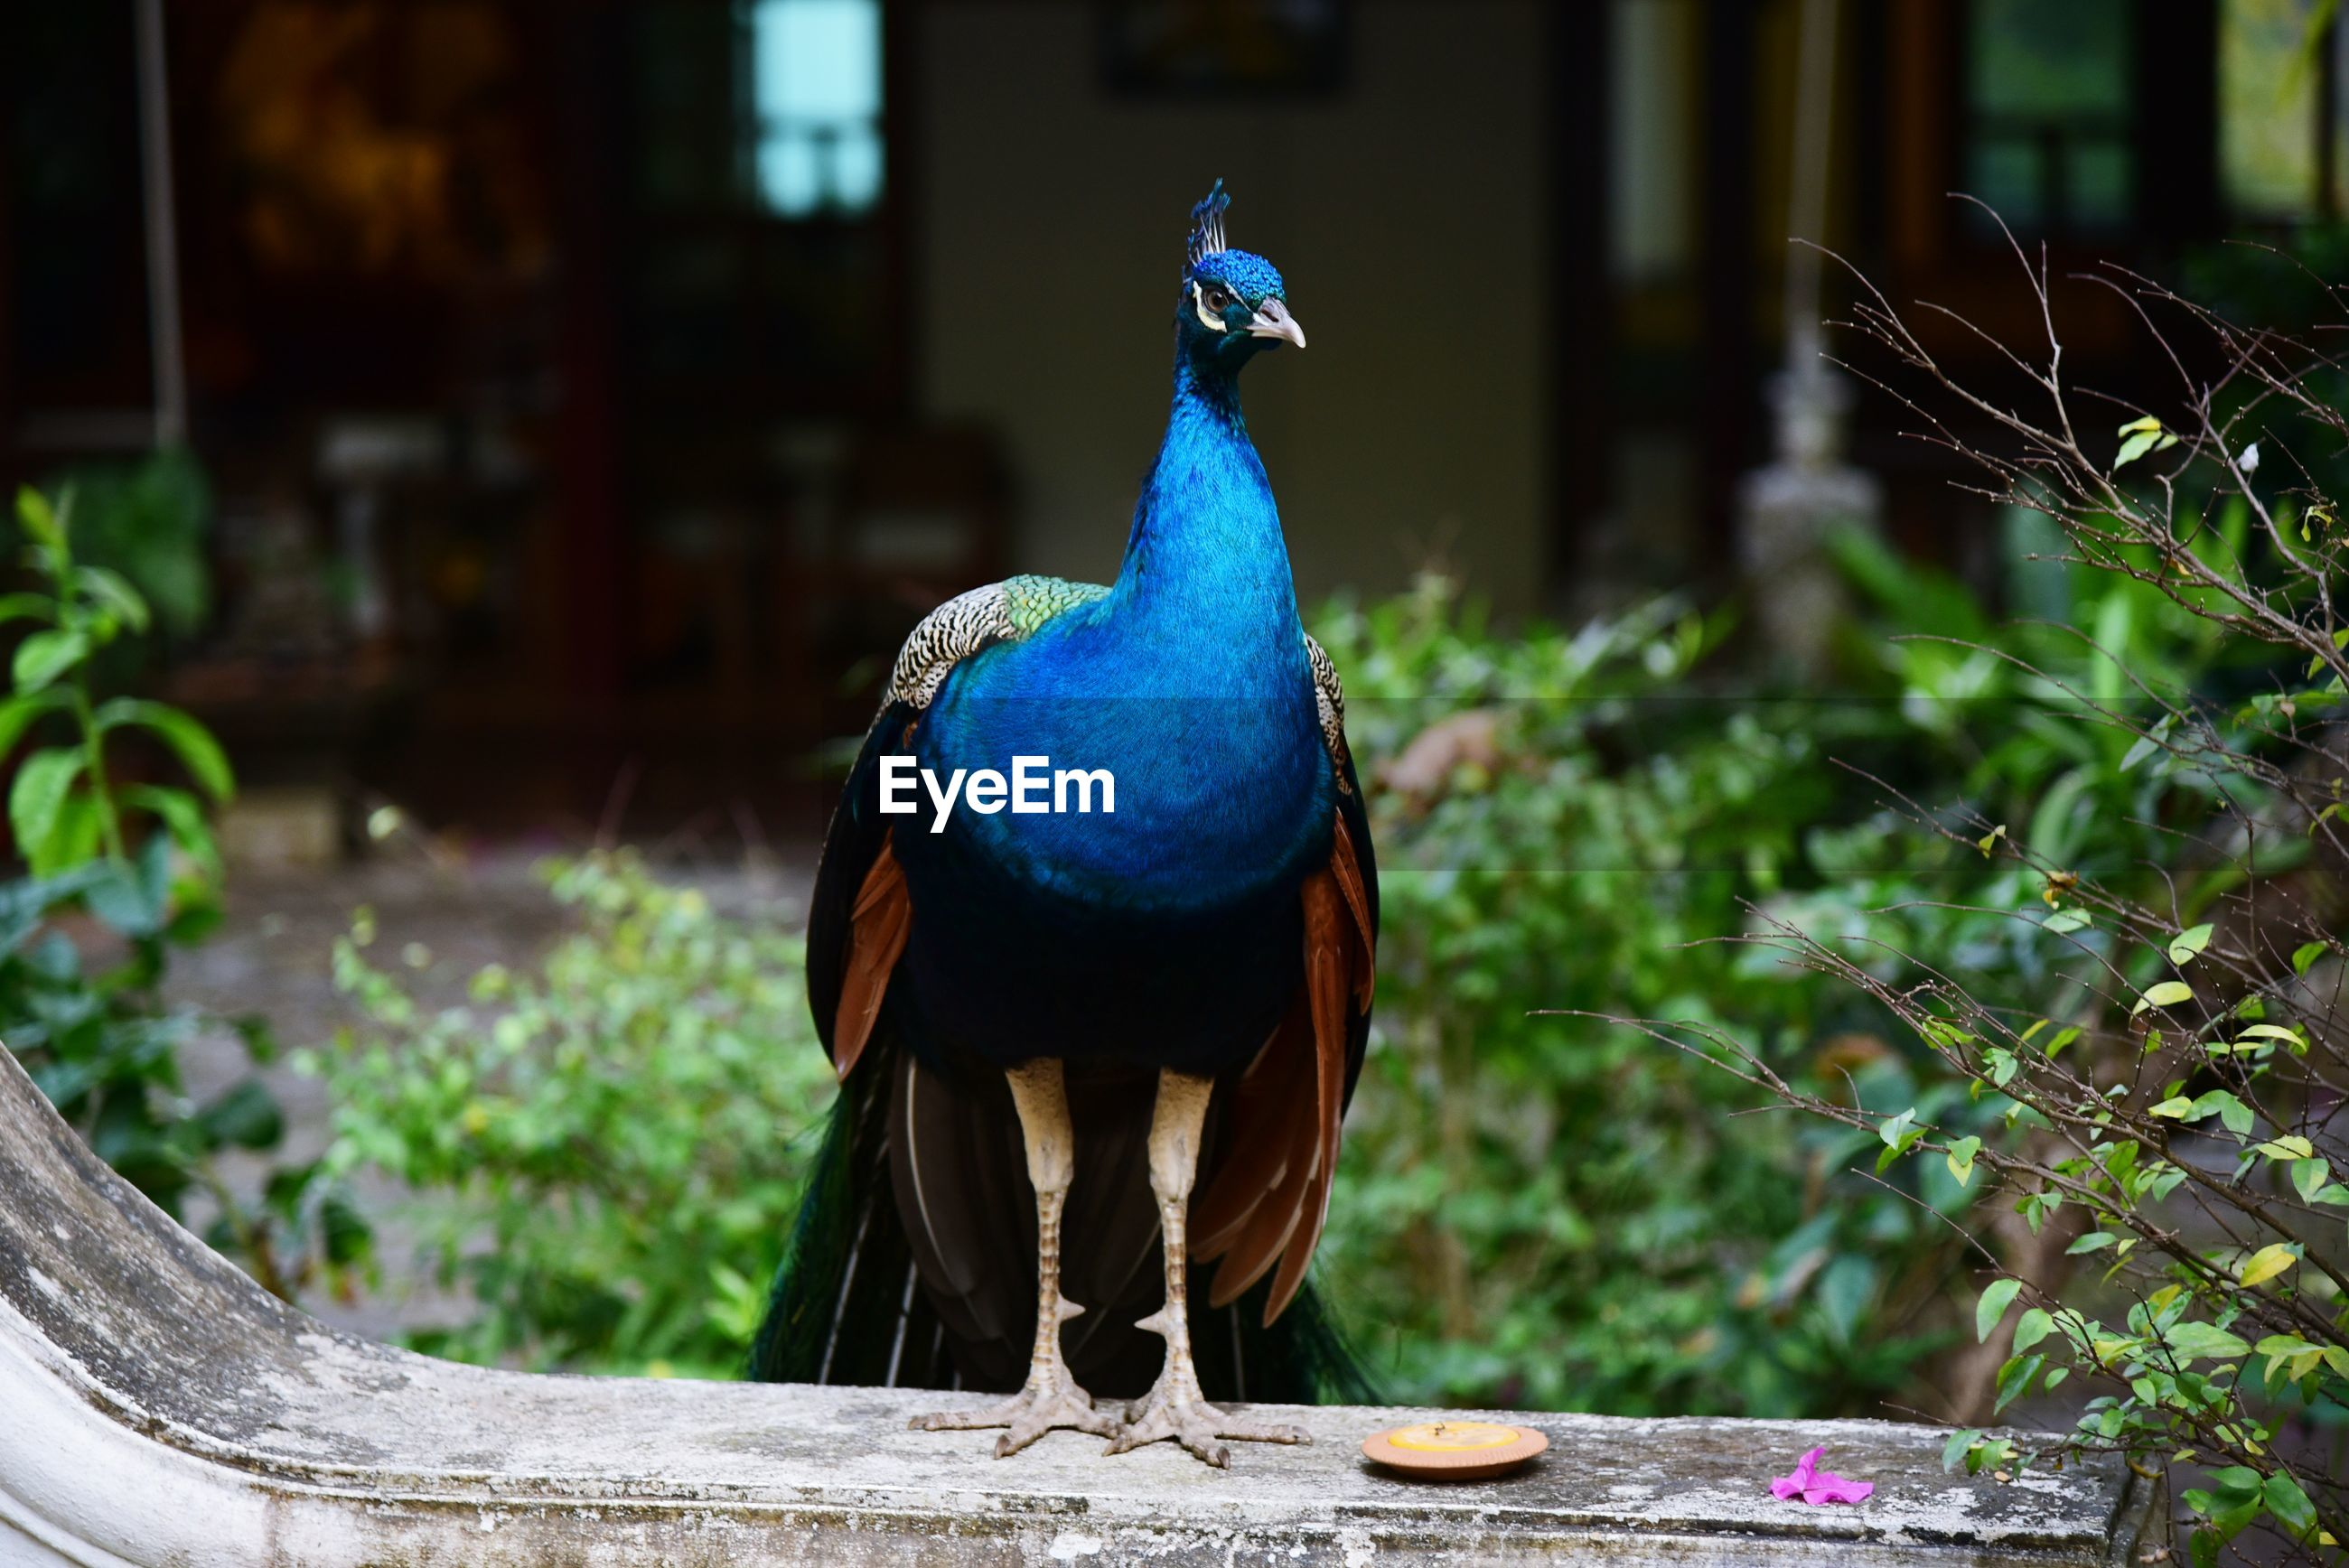 High angle view of a peacock